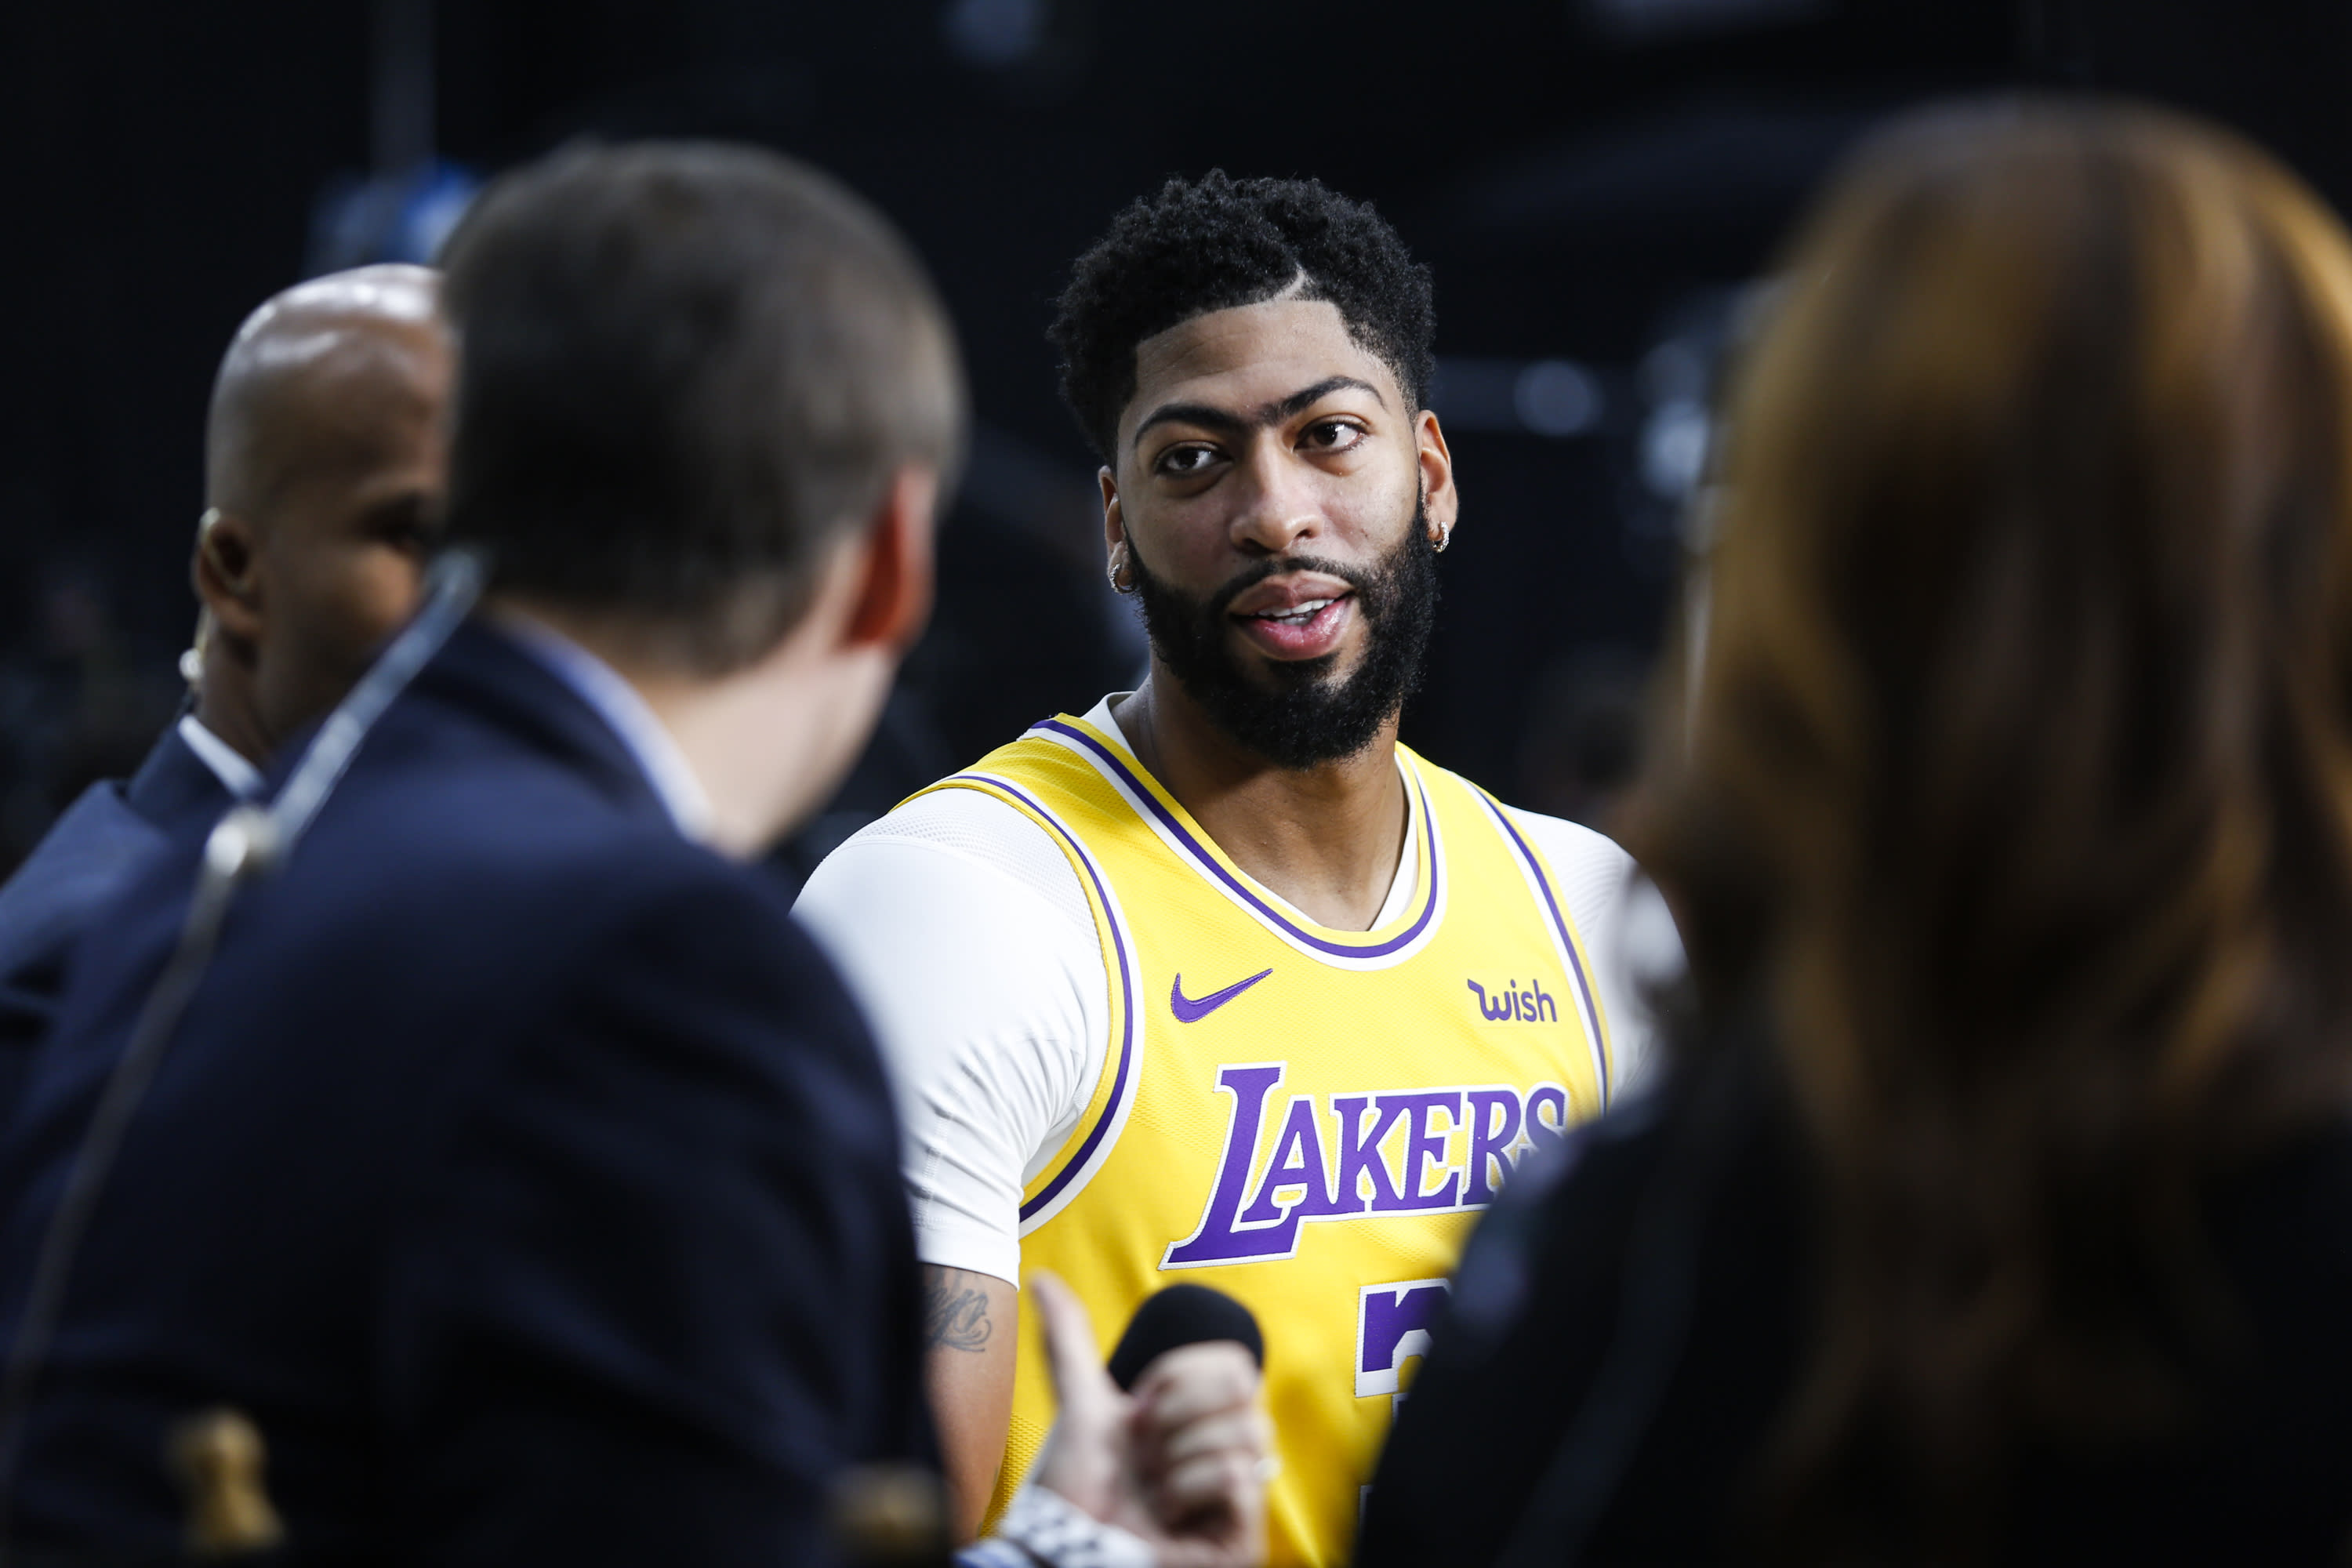 Los Angeles Lakers forward Anthony Davis attends the NBA basketball team's media day in El Segundo, Calif., Friday, Sept. 27, 2019. (AP Photo/Ringo H.W. Chiu)